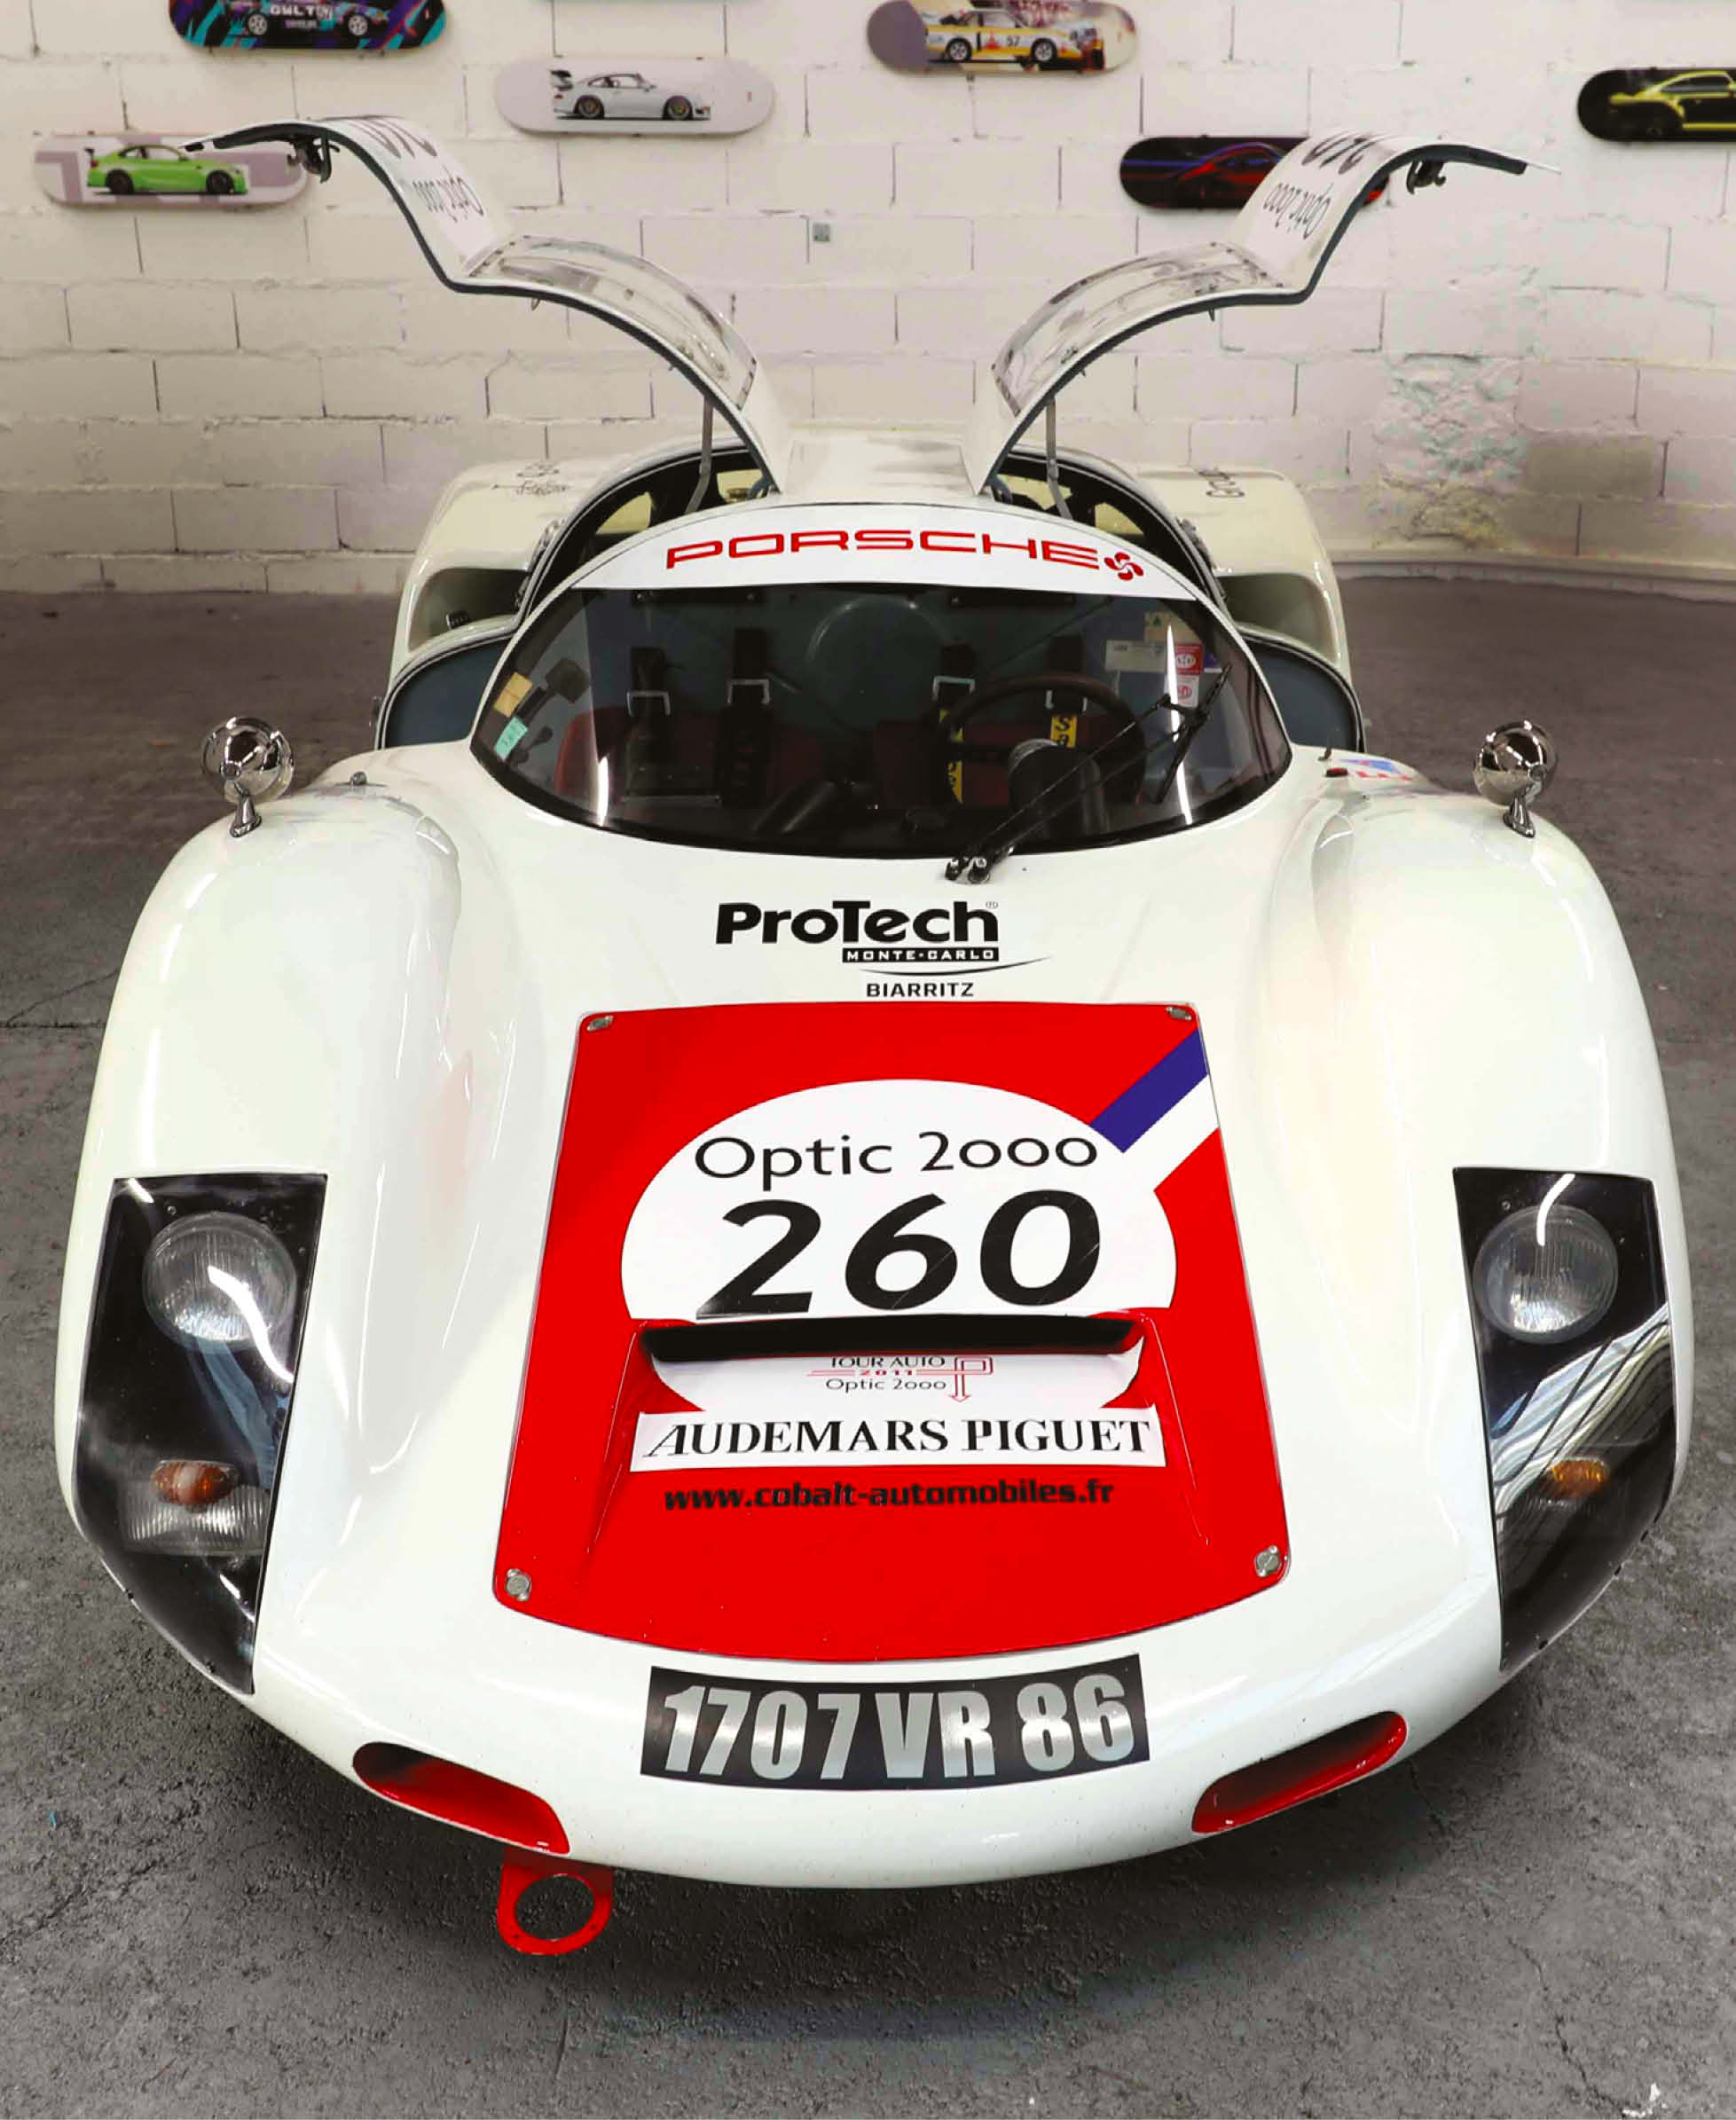 1966 Porsche 906. €1,550,000 On offer privately from Darron Coppin brokerage, Dorset, UK email: darron@svencycles.com